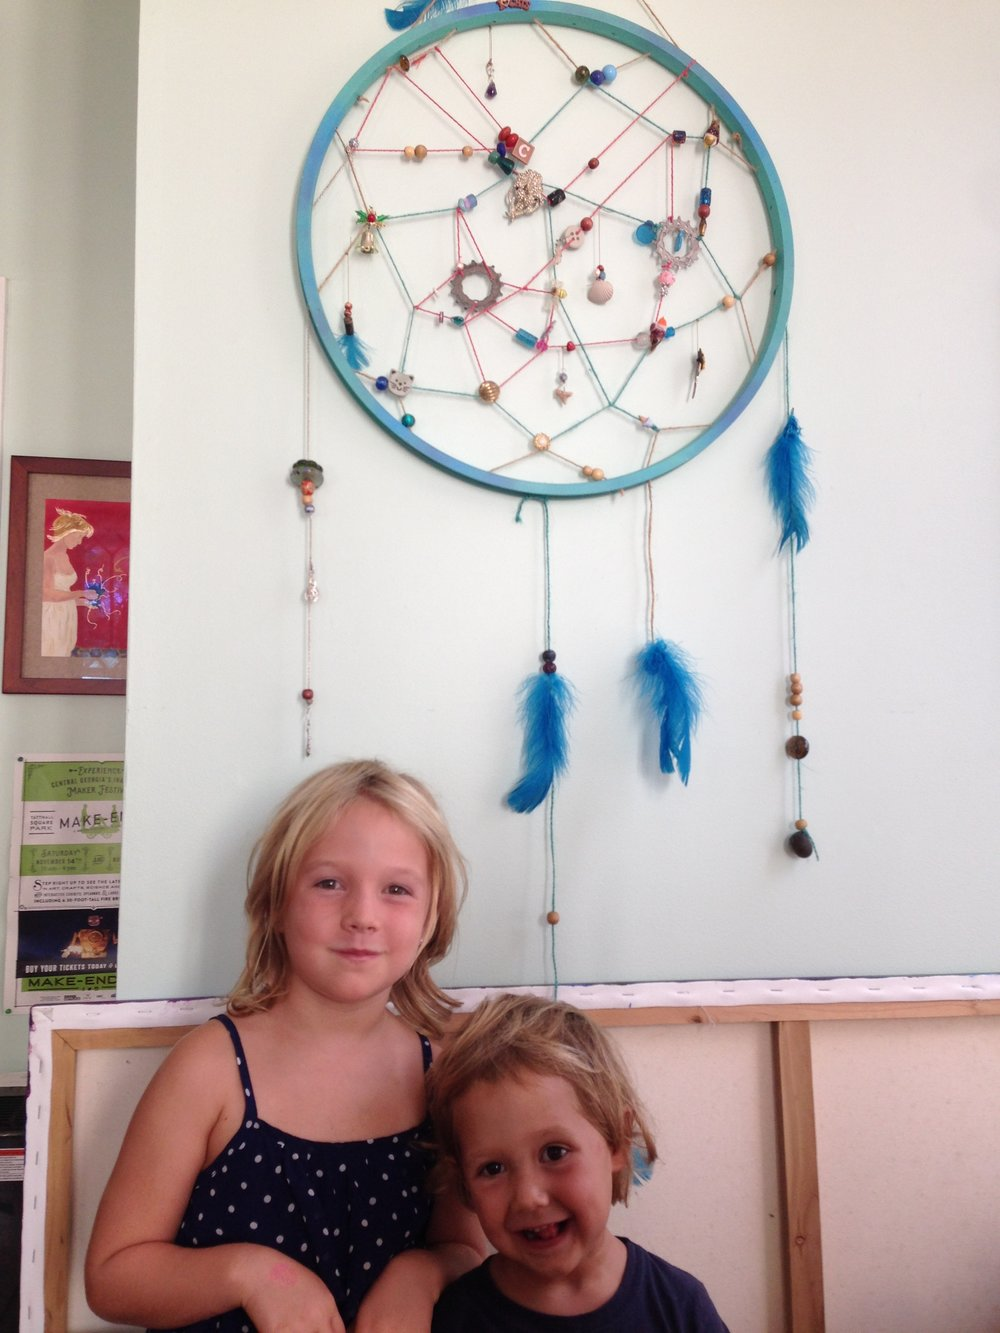 These little angels assisted the artist in the creation of their very own dream catcher!